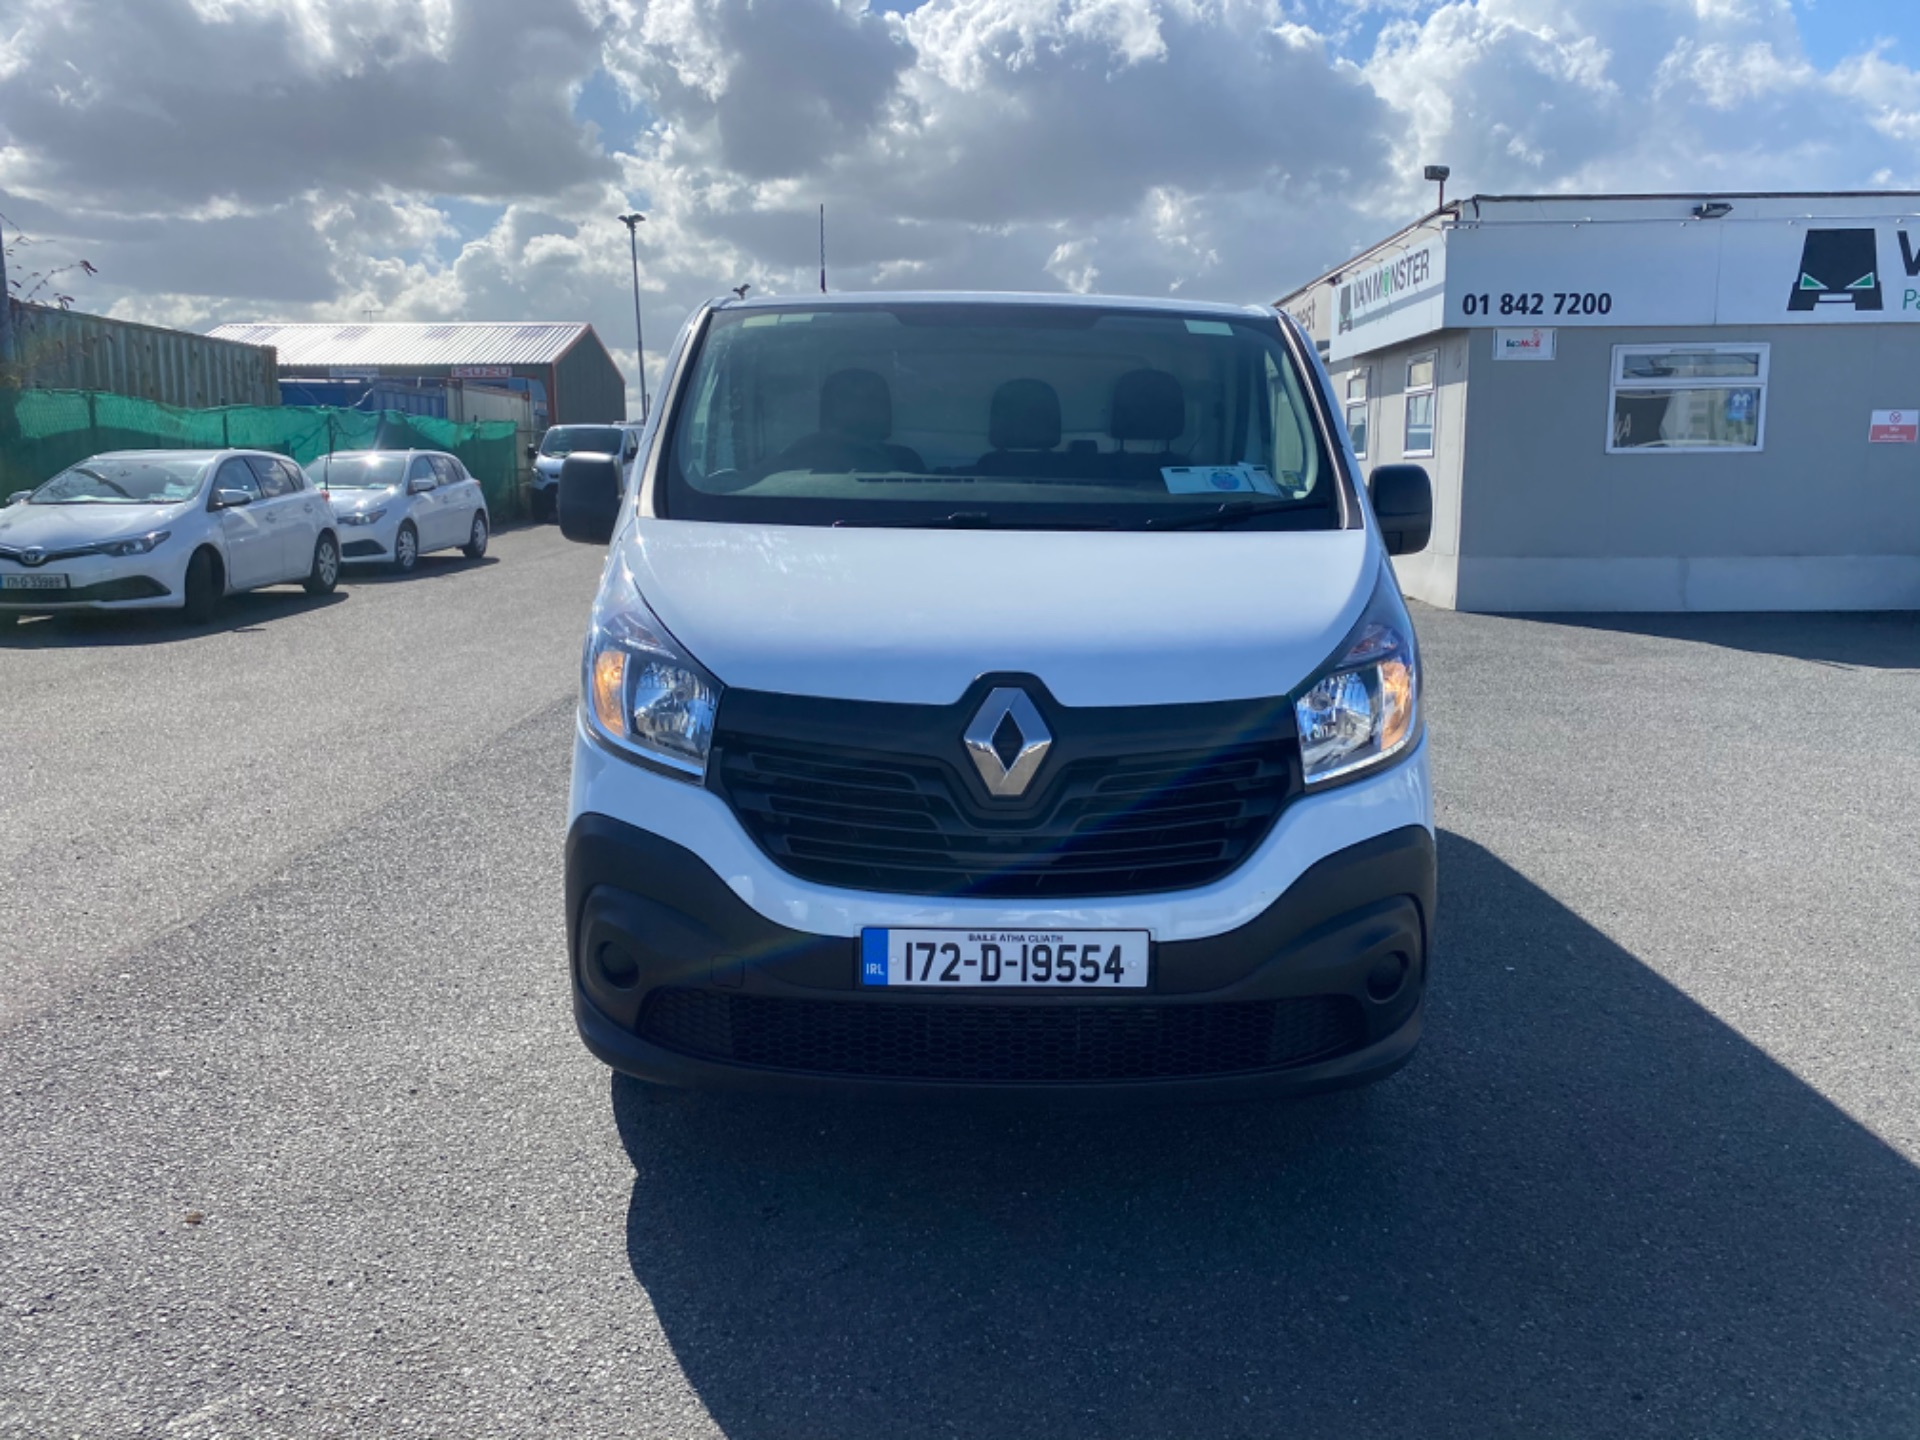 2017 Renault Trafic LL29 DCI 120 BUSINESS 3DR (172D19554) Image 1